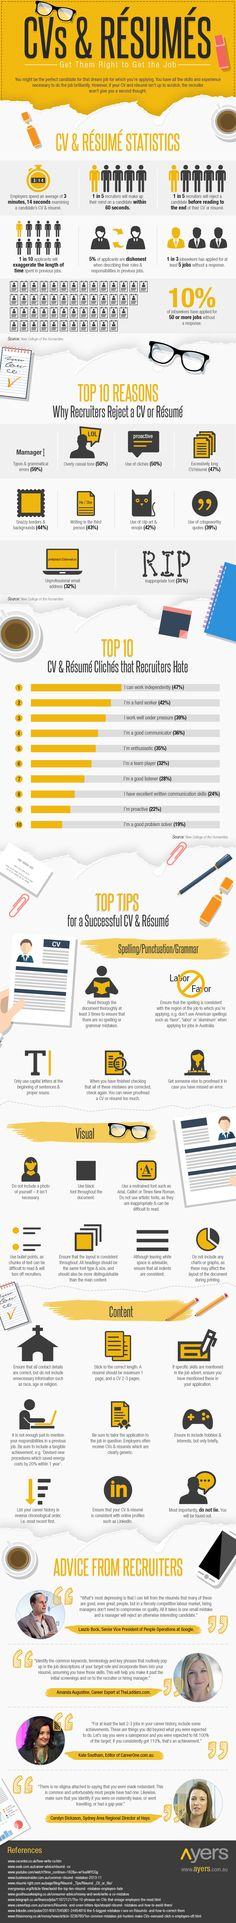 Resume Dos and Don\u0027ts Making Recruiters Take Notice (Infographic - Resume Dos And Don Ts